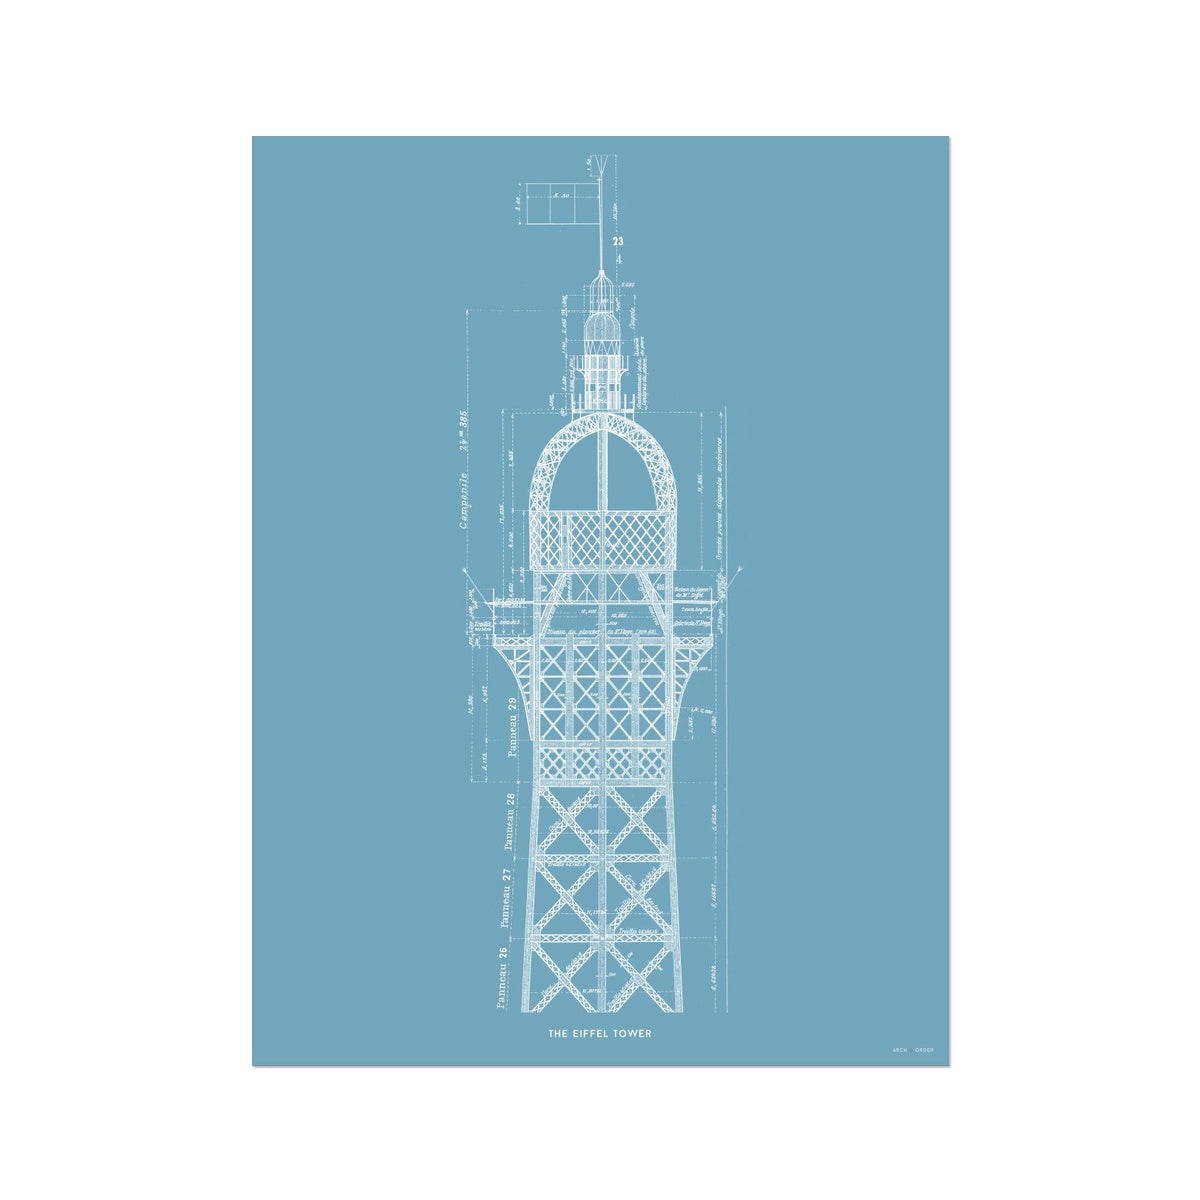 The Eiffel Tower - Top Cross Section - Blue -  Etching Paper Print